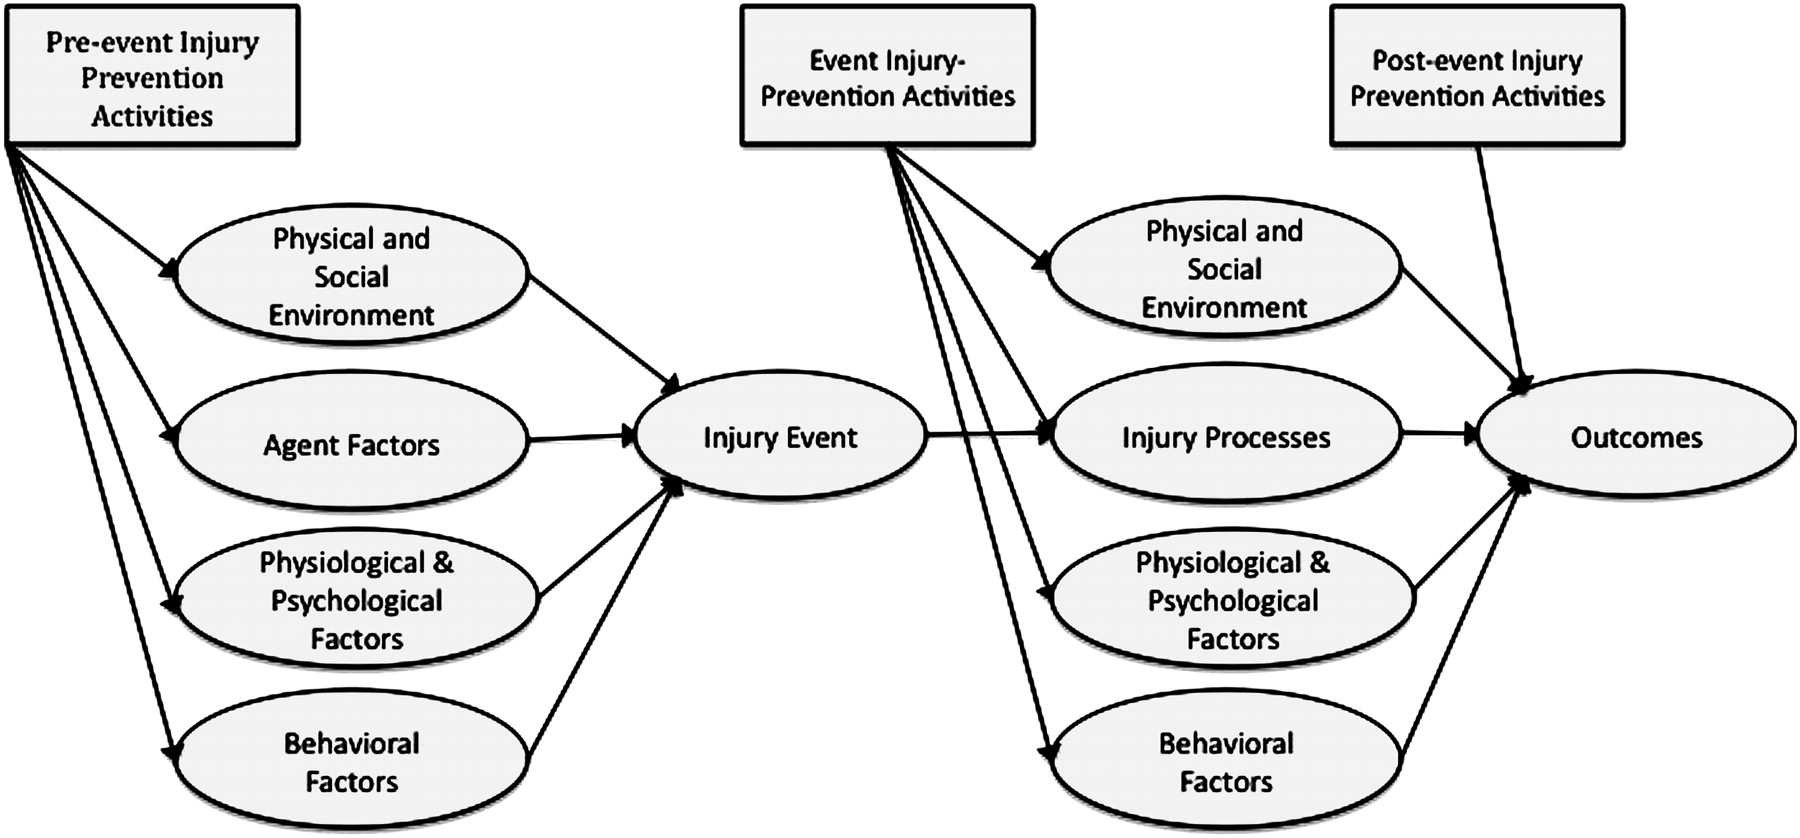 Injury Prevention And Risk Communication A Mental Models